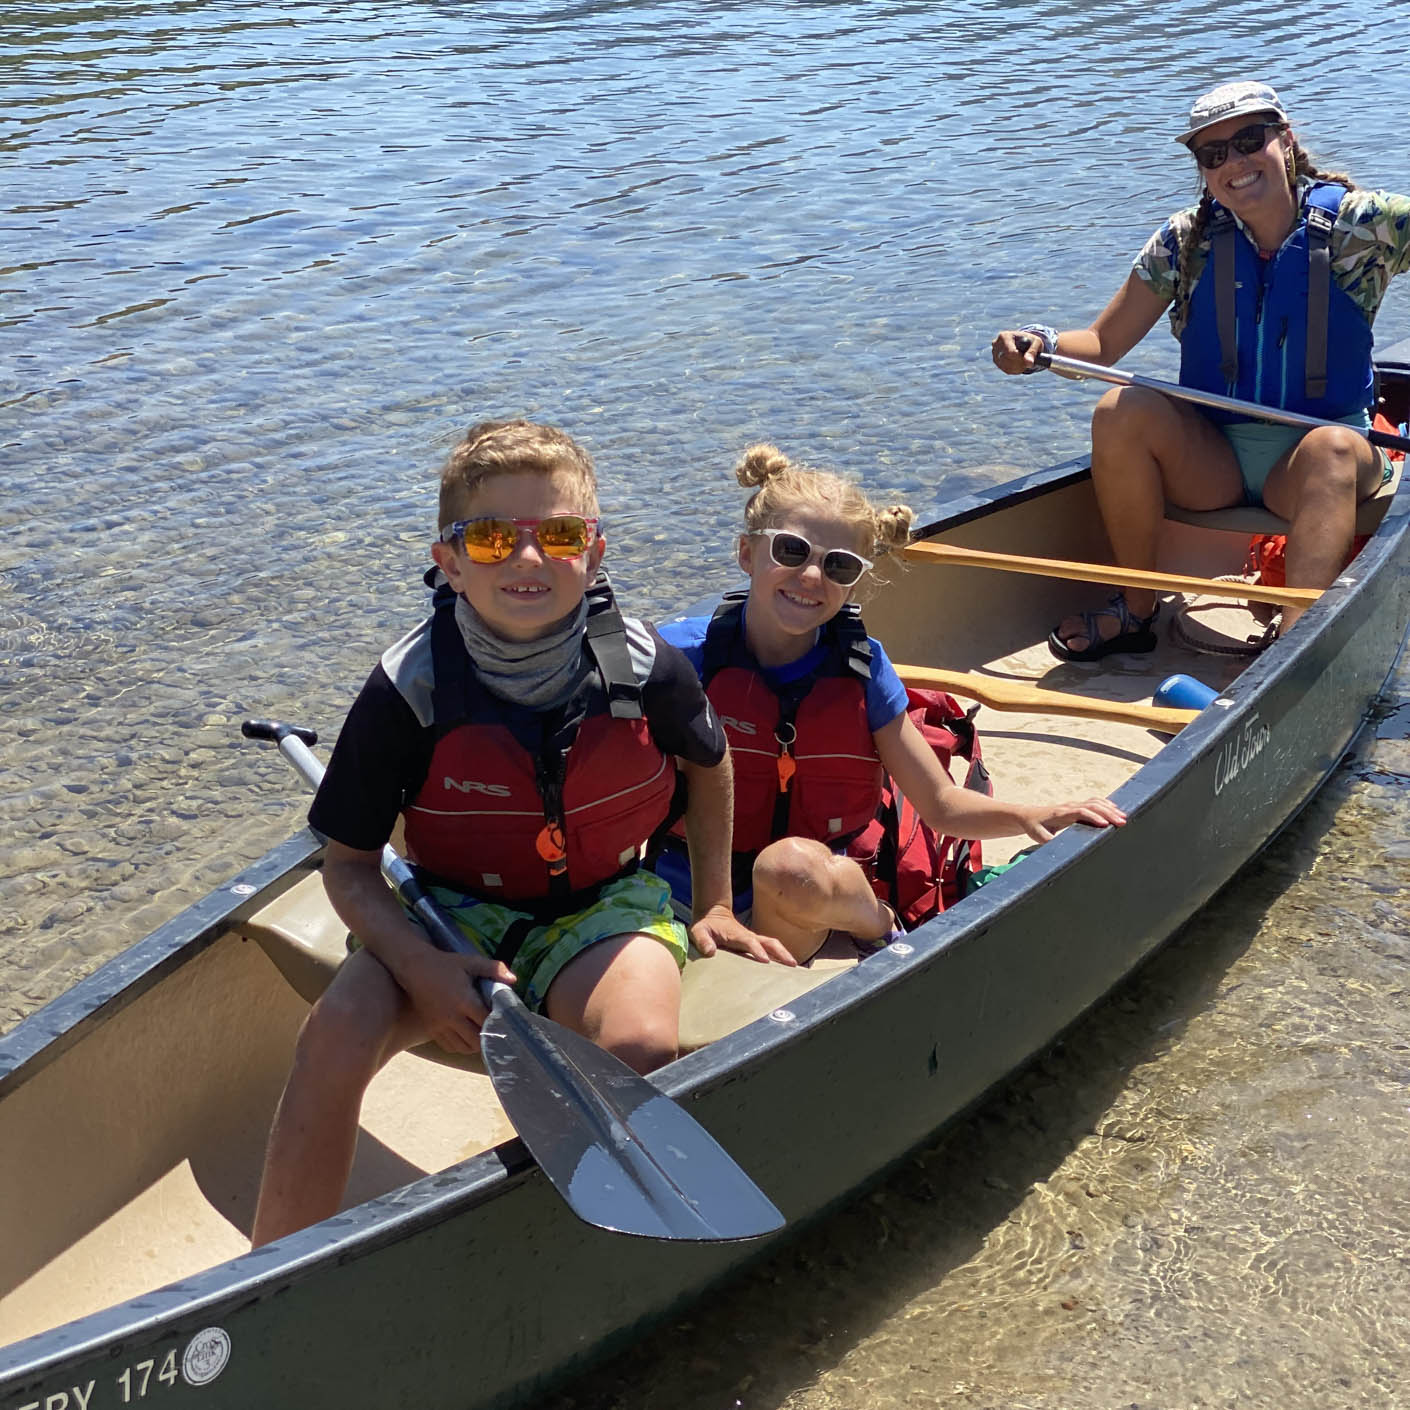 Young kids in a canoe